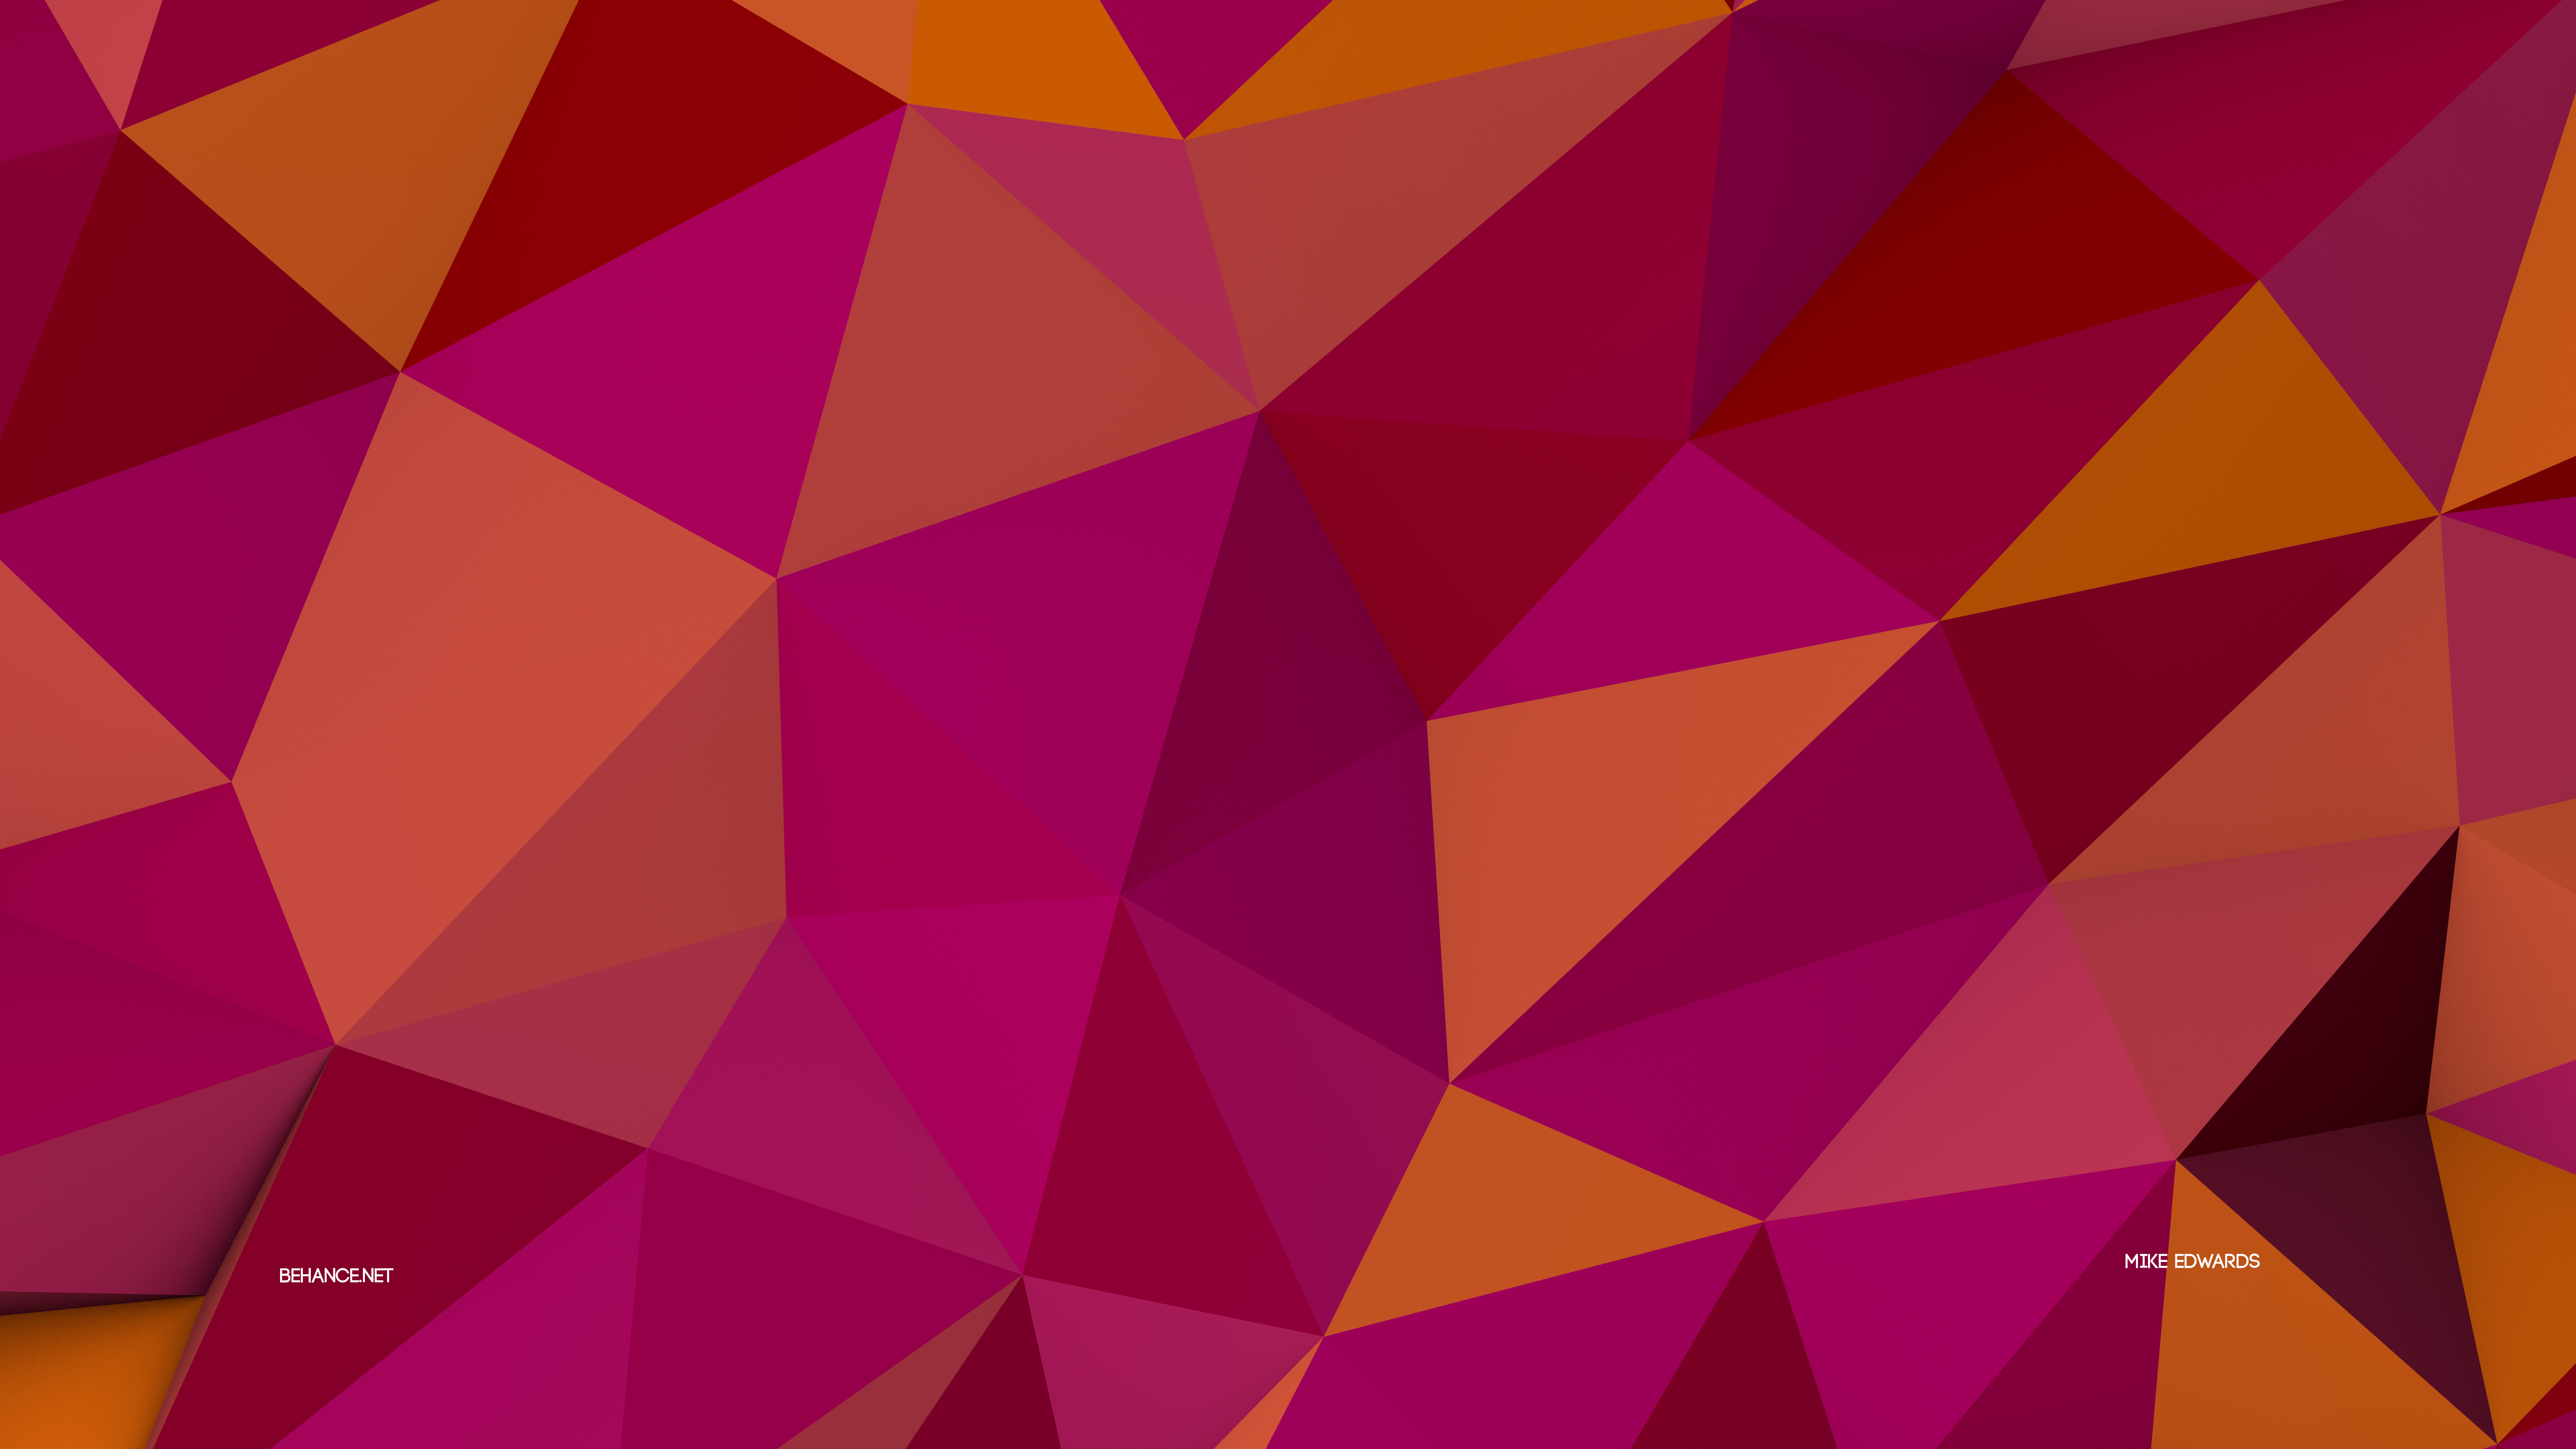 low_poly_wallpaper_8k_pink_by_mike_edwards-d74u6i0